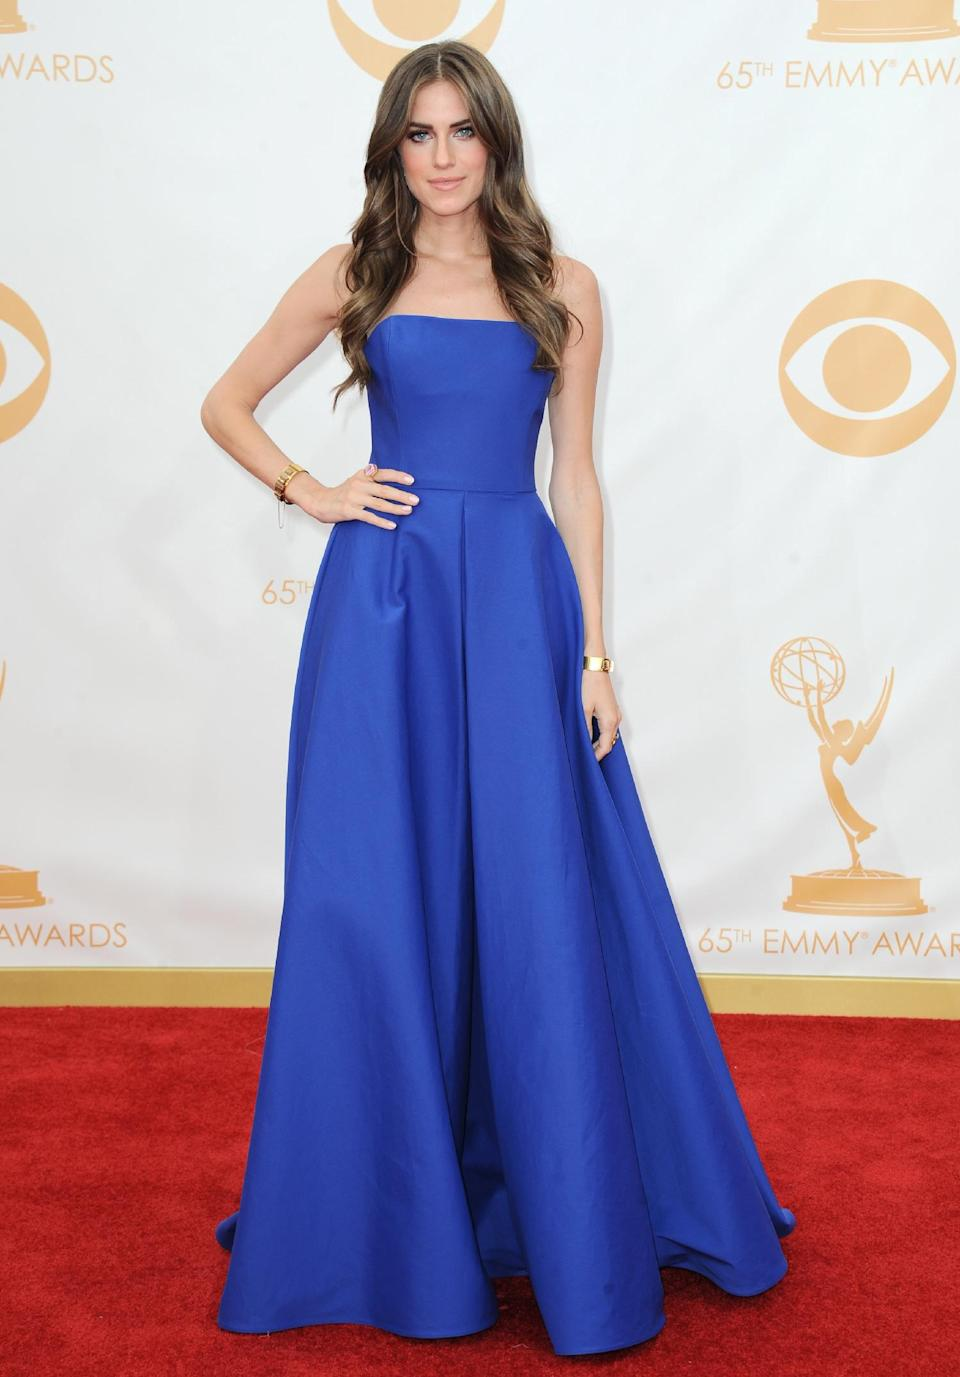 Allison Williams, wearing Ralph Lauren, arrives at the 65th Primetime Emmy Awards at Nokia Theatre on Sunday Sept. 22, 2013, in Los Angeles. (Photo by Jordan Strauss/Invision/AP)